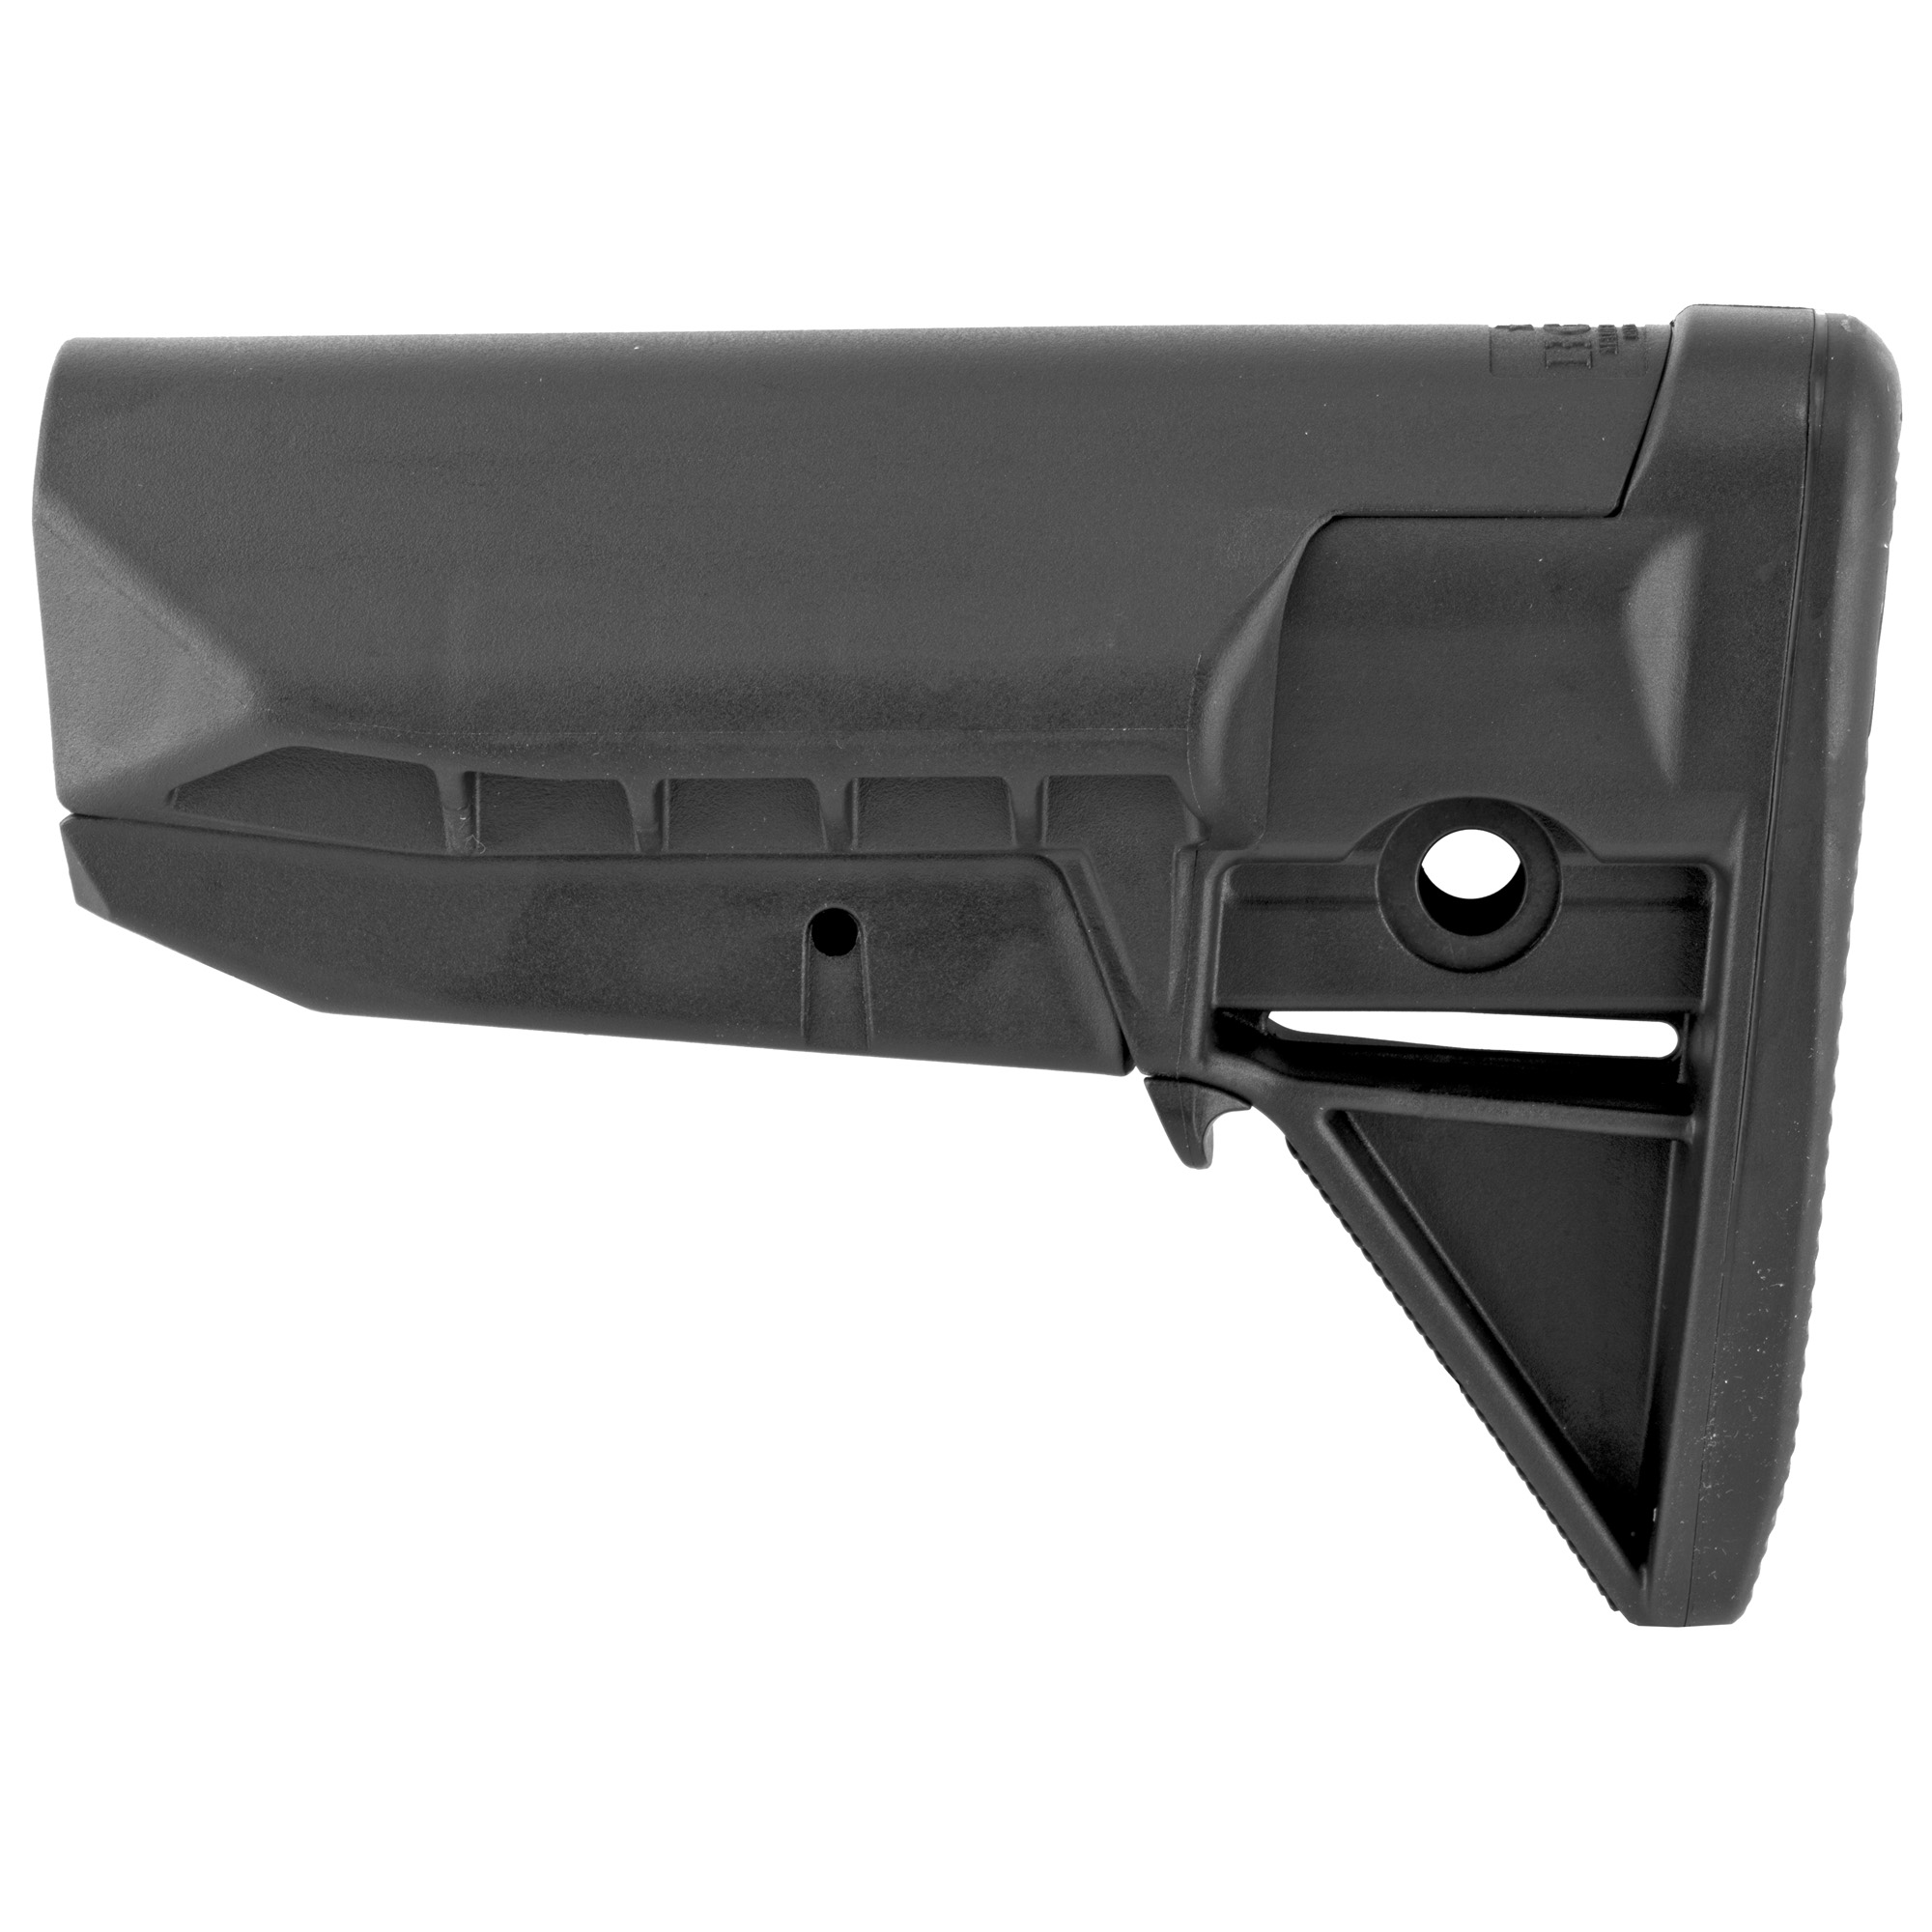 """Bravo Company's BCMGUNFIGHTER Stock Assembly Mod 0 SOPMOD is the strongest light-weight polymer stock available for your mil-spec receiver extension. With no sharp edges this snag free design prevents the tangling of the rifle with the shooter's sling"""" molle gear or other kit. It has a more pronounced cheek weld-SOPMOD type.The modular VBOST (Vehicle Borne Operations Sling Tab) interfaces with the shooter's riggers' band or bungee to secure the shooter's sling against the stock when the carbine is not in use. Increasingly"""" this is the most common application when operating inside a vehicle. It has 2 different types of ambidextrous sling mounting options"""" including QD swivel sockets and an integrated color matched rubber butt pad for secure shoulder placement"""" along with increased durability. With its simple modular design"""" 6 parts and 1 screw it allows for modular adaption of future stock options and configurations."""